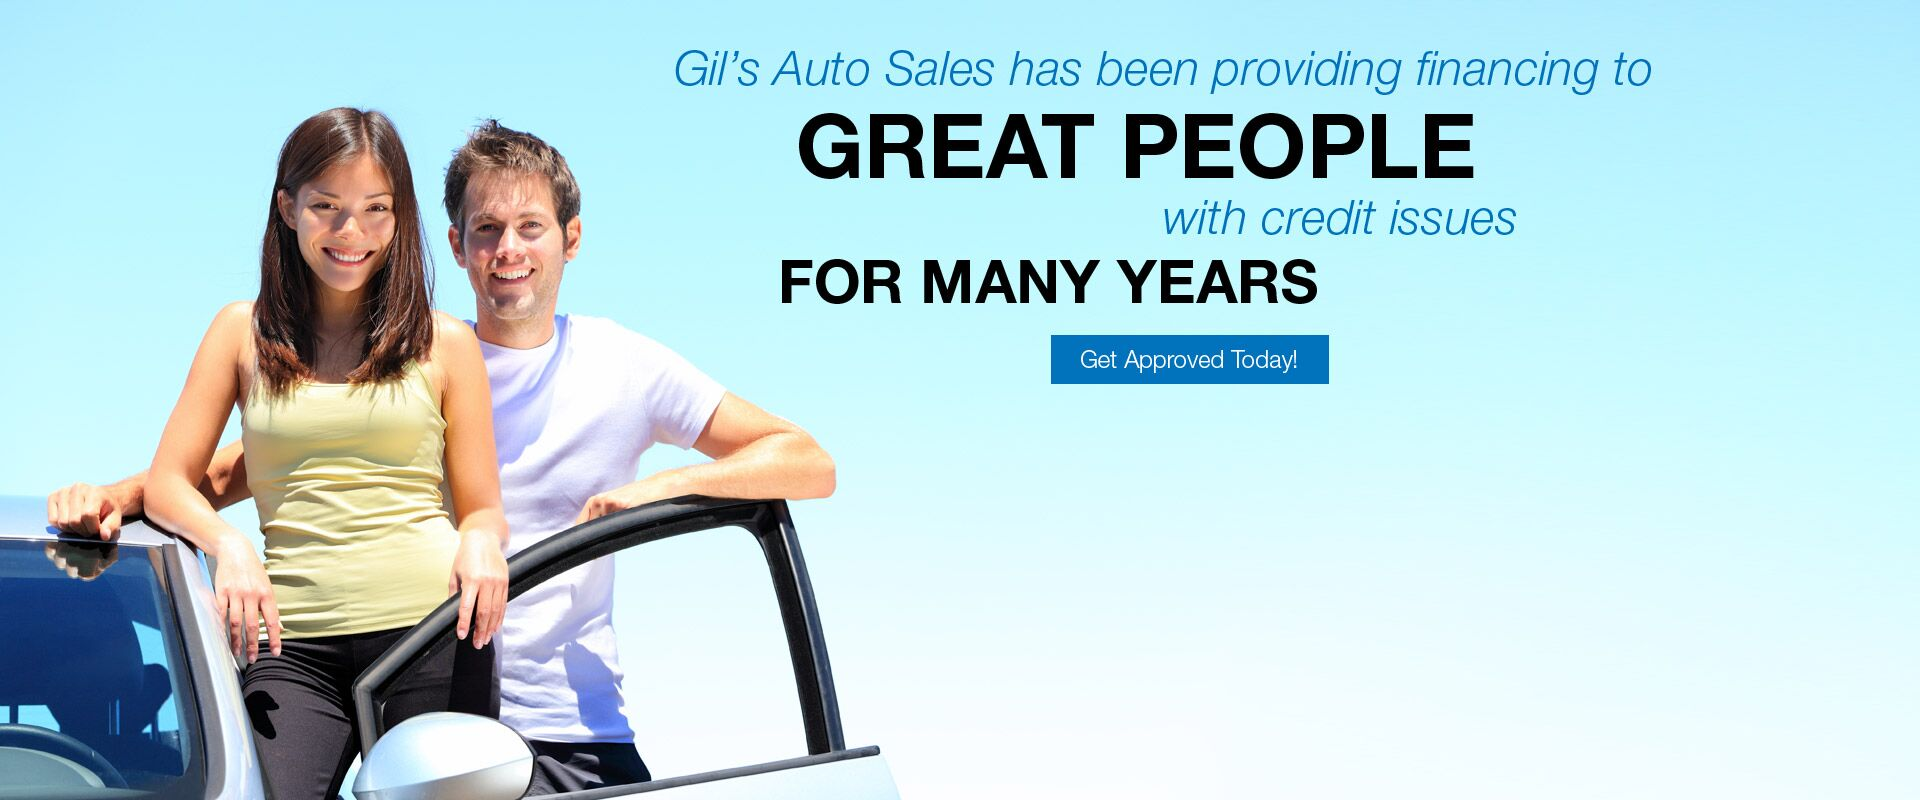 Repair your Credit at Gil's Auto